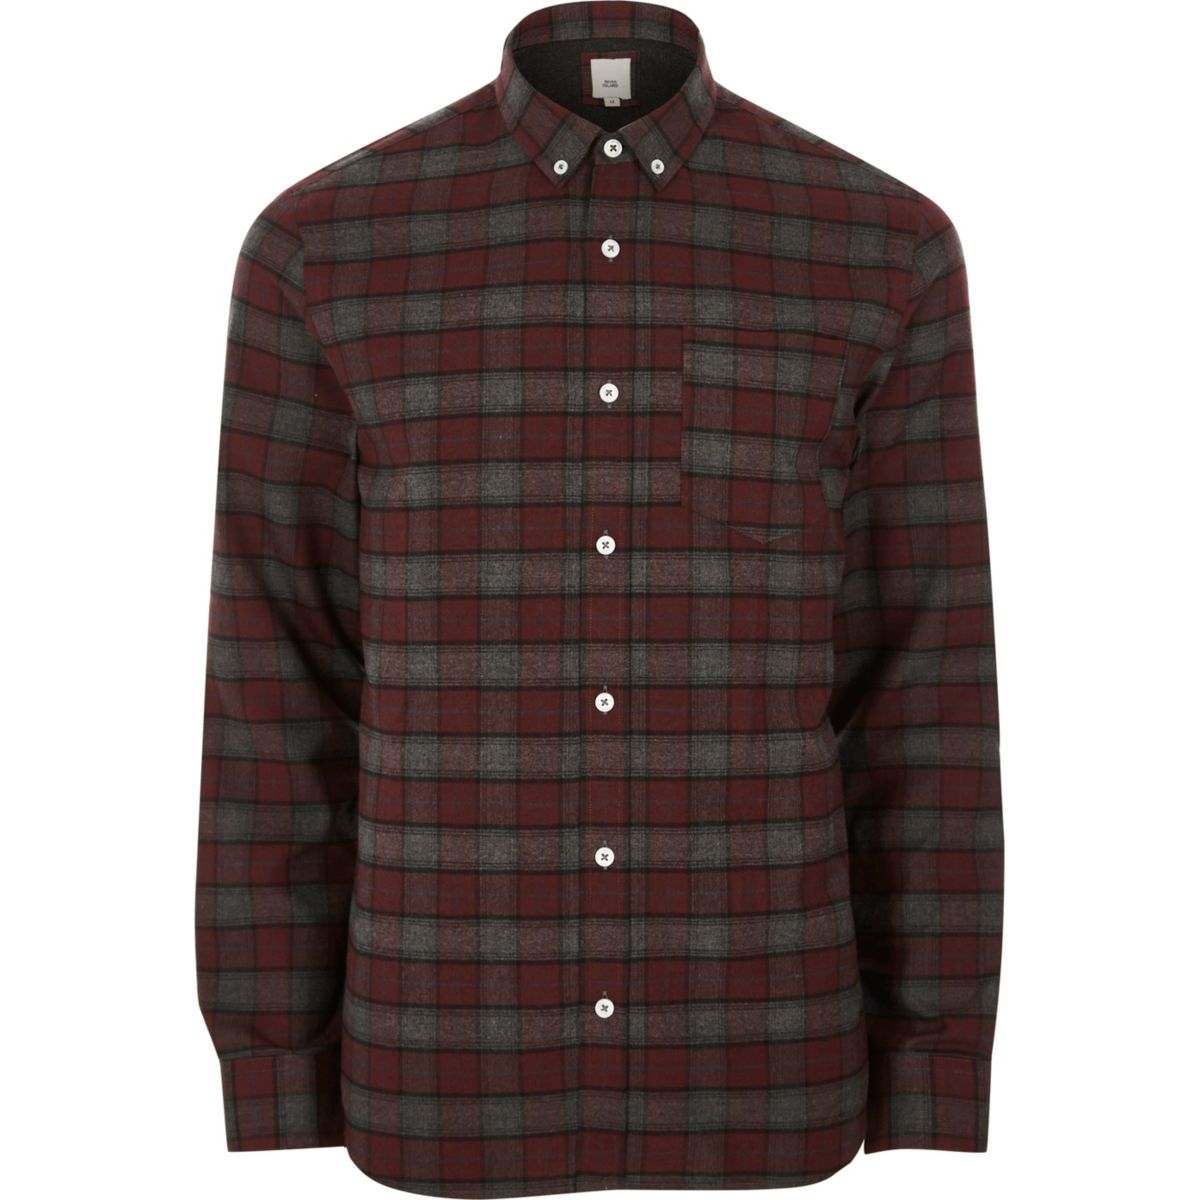 Dark red check long sleeve button-down shirt